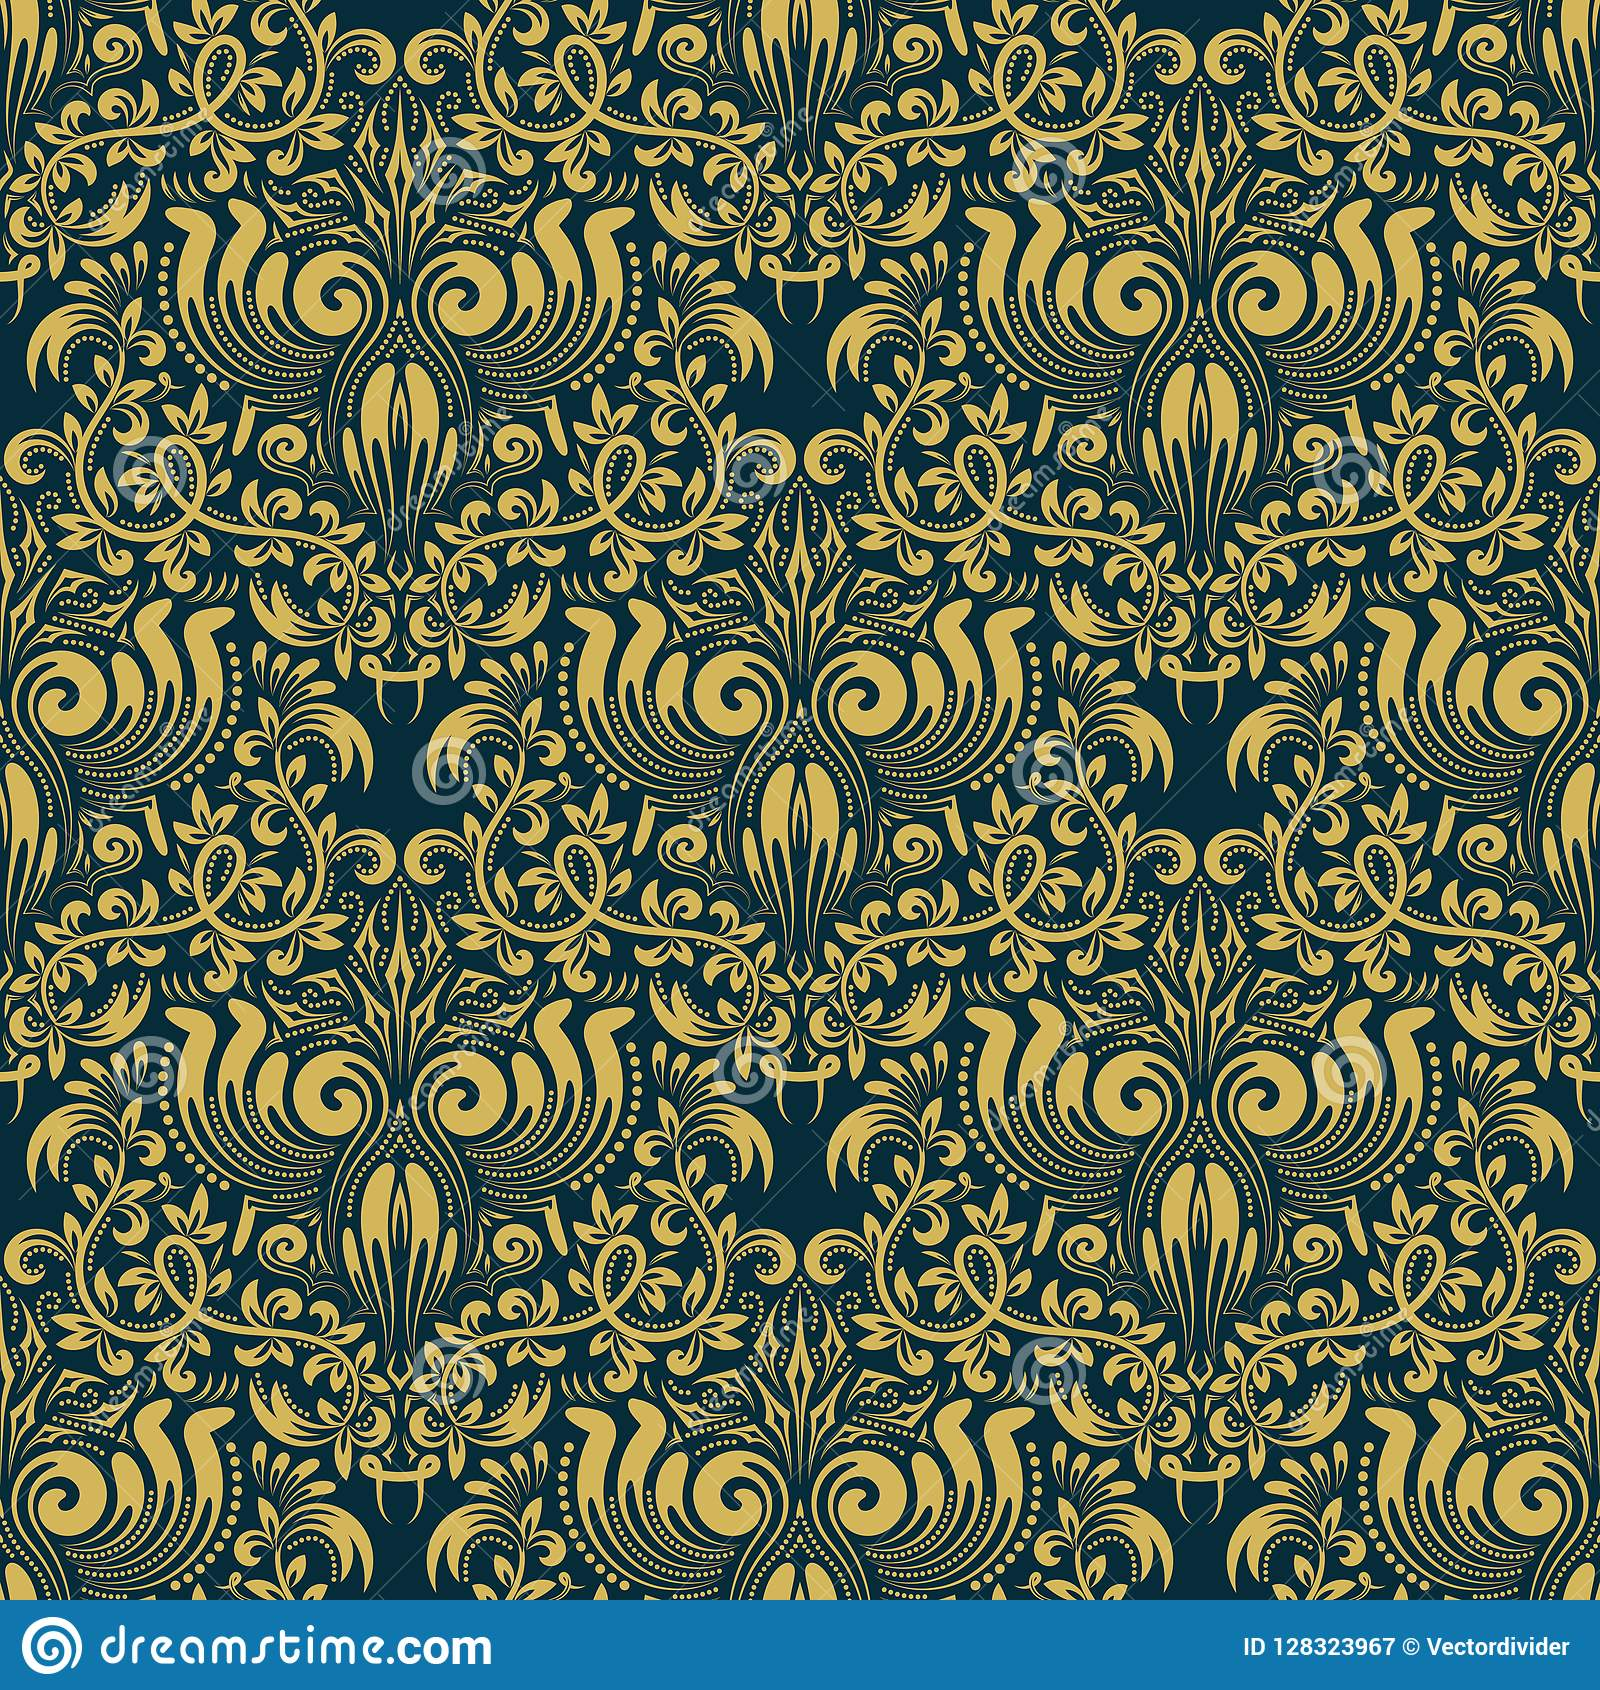 Damask Seamless Pattern Repeating Background Golden Blue Floral Ornament In Baroque Style